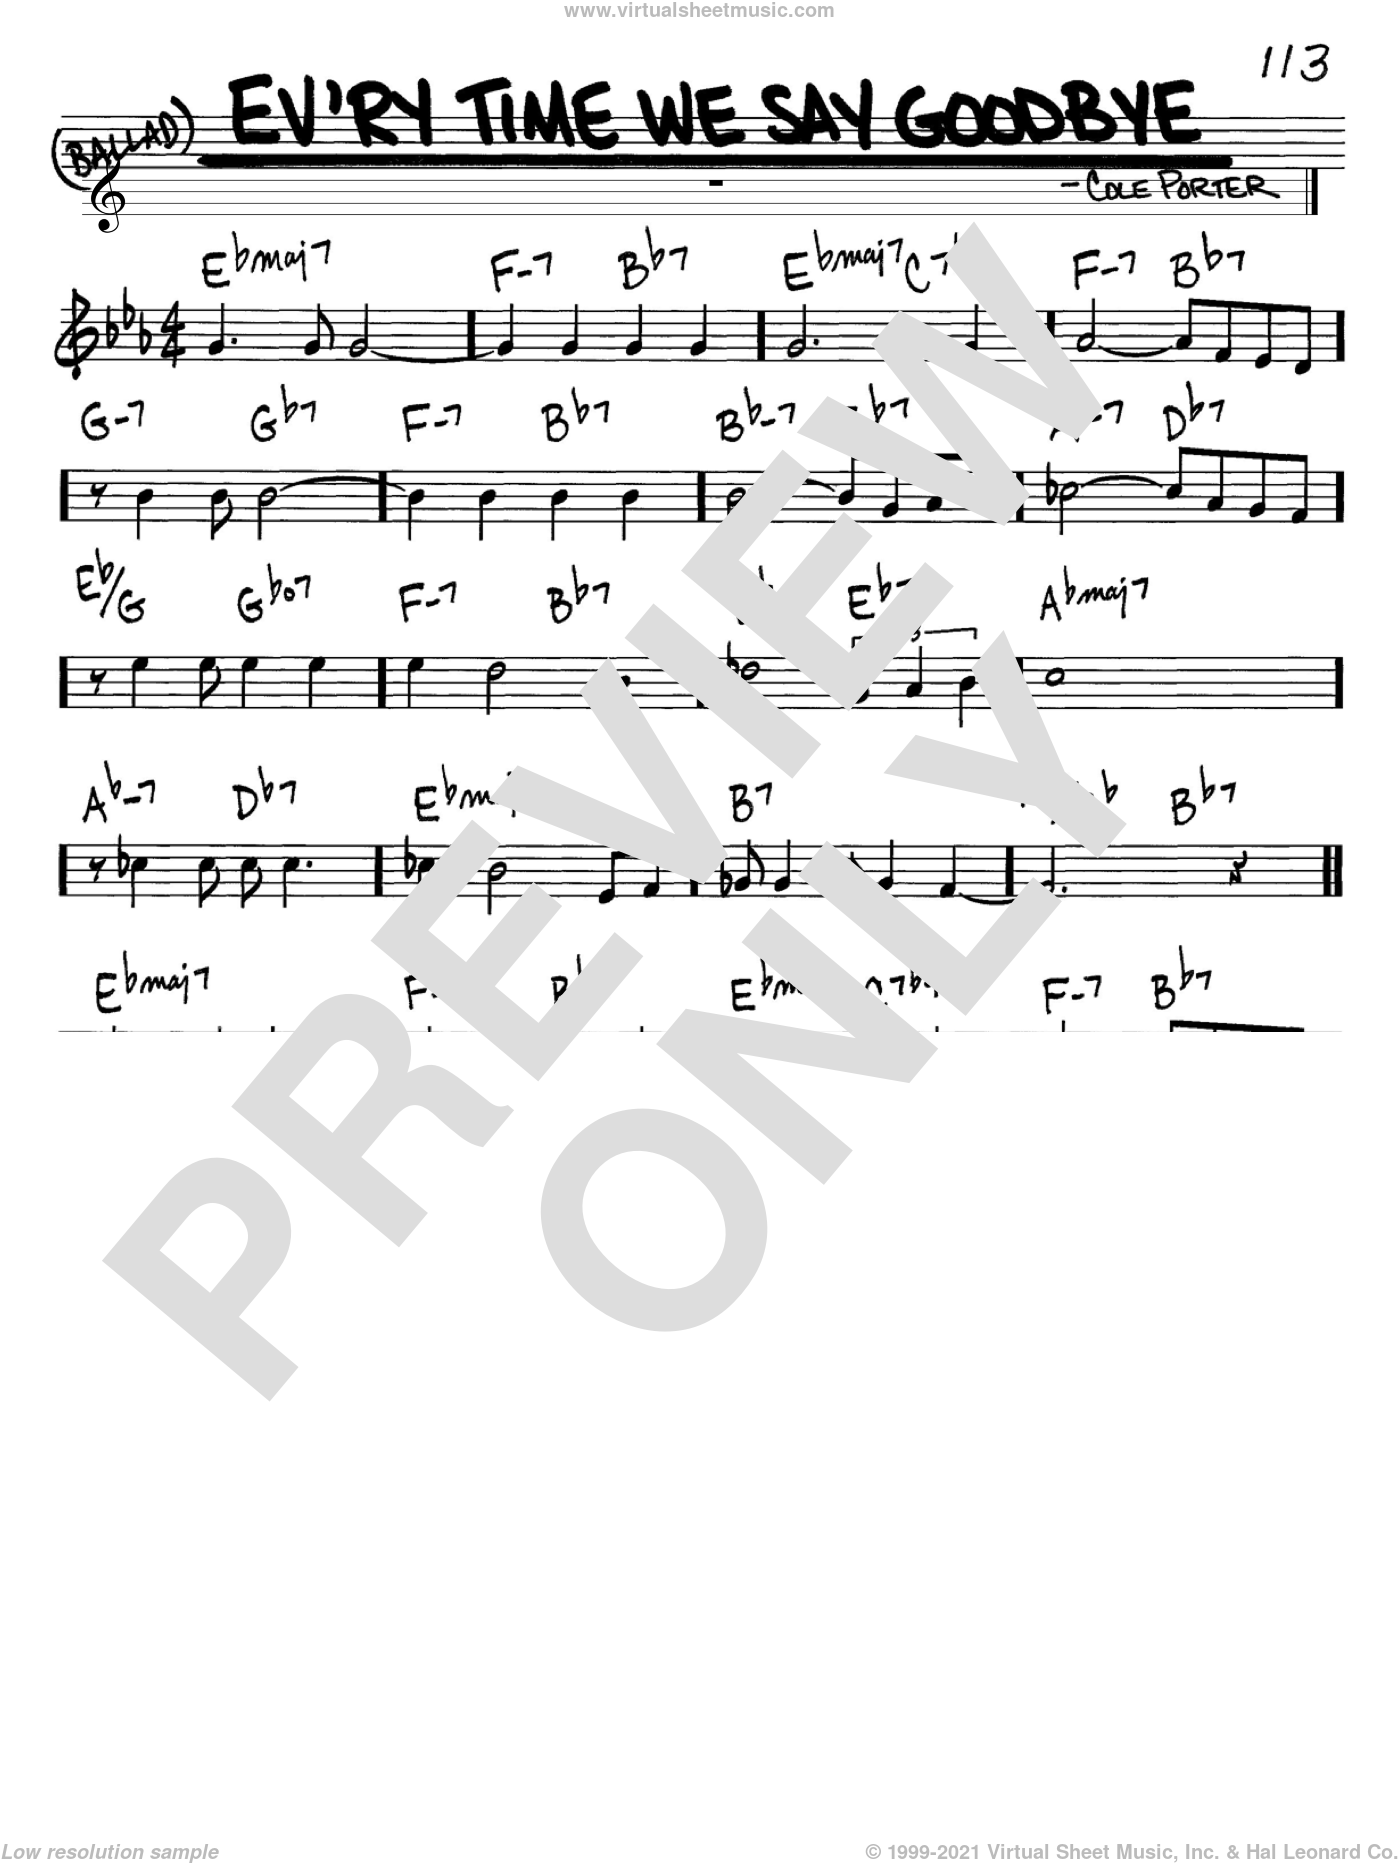 Ev'ry Time We Say Goodbye sheet music for voice and other instruments (C) by Cole Porter. Score Image Preview.